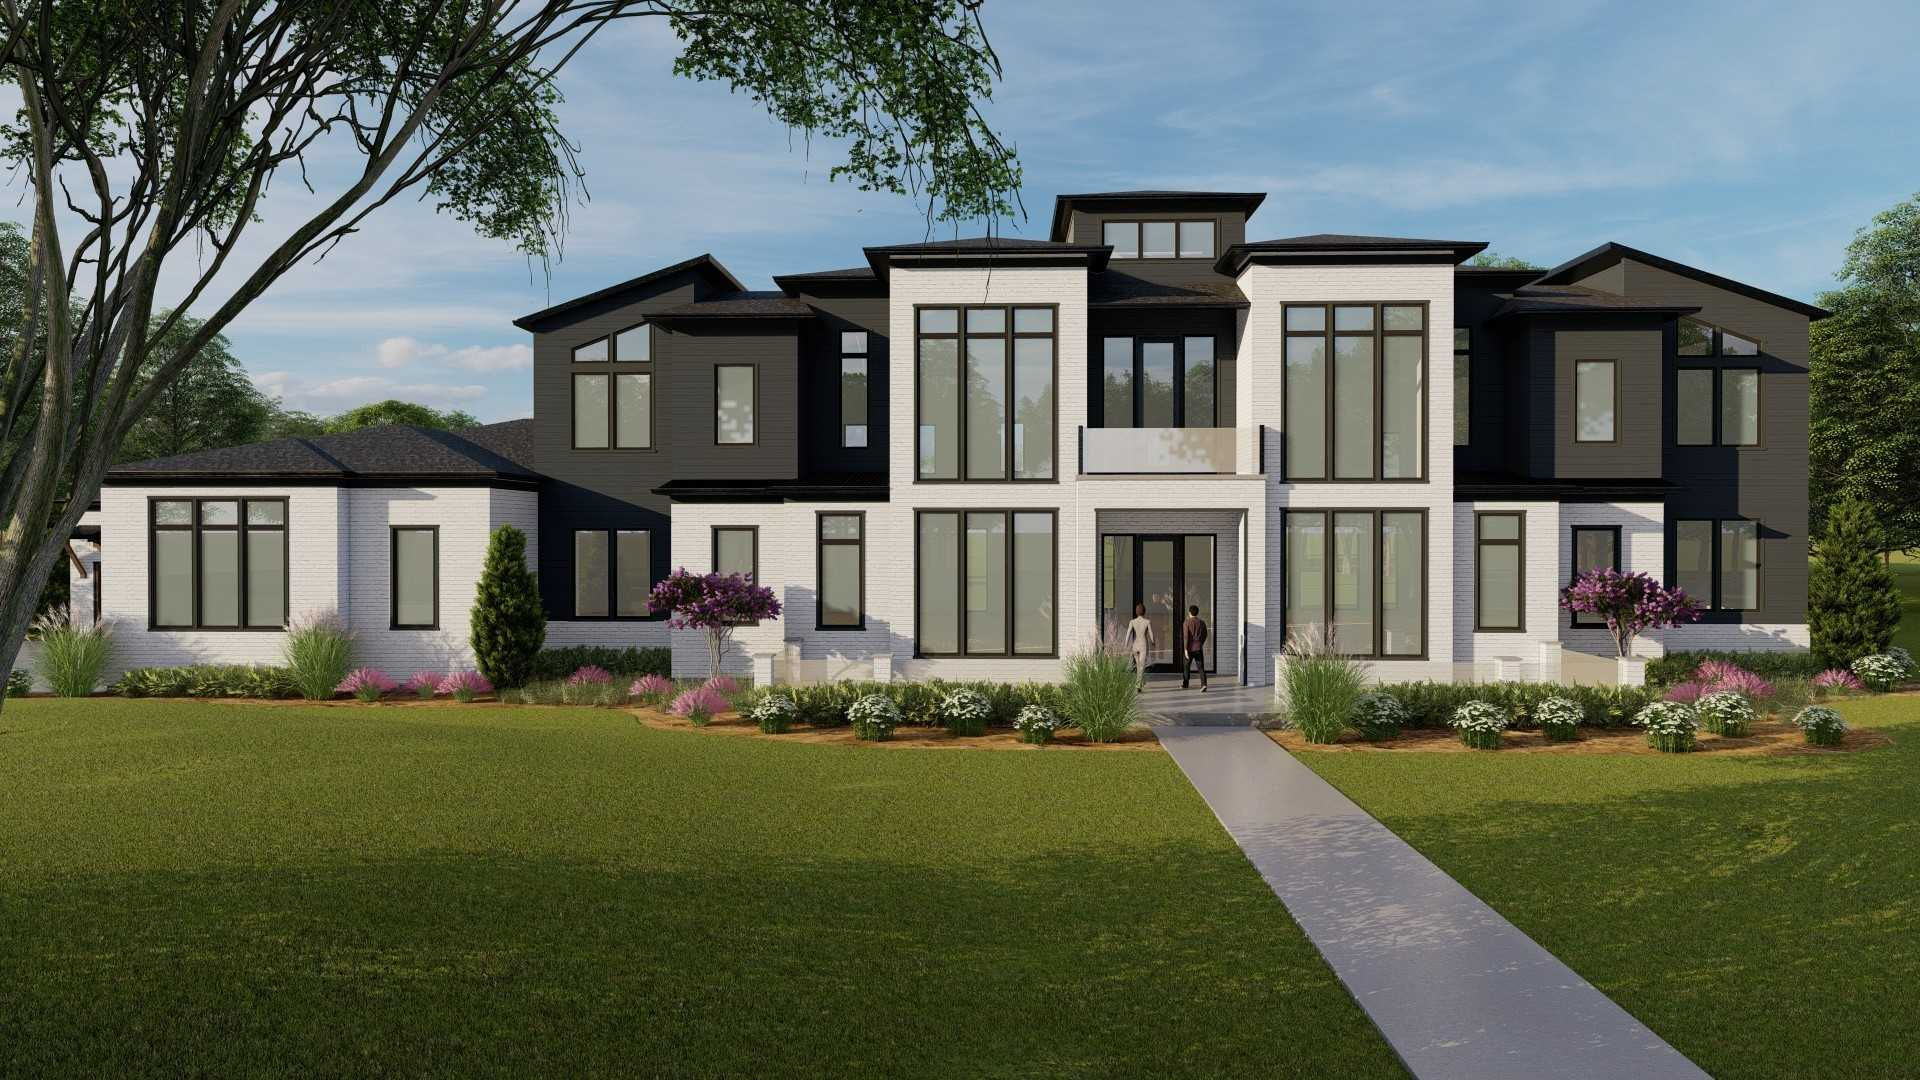 $5,800,000 - 6Br/8Ba -  for Sale in Brentwood Hills Sec 4, Brentwood